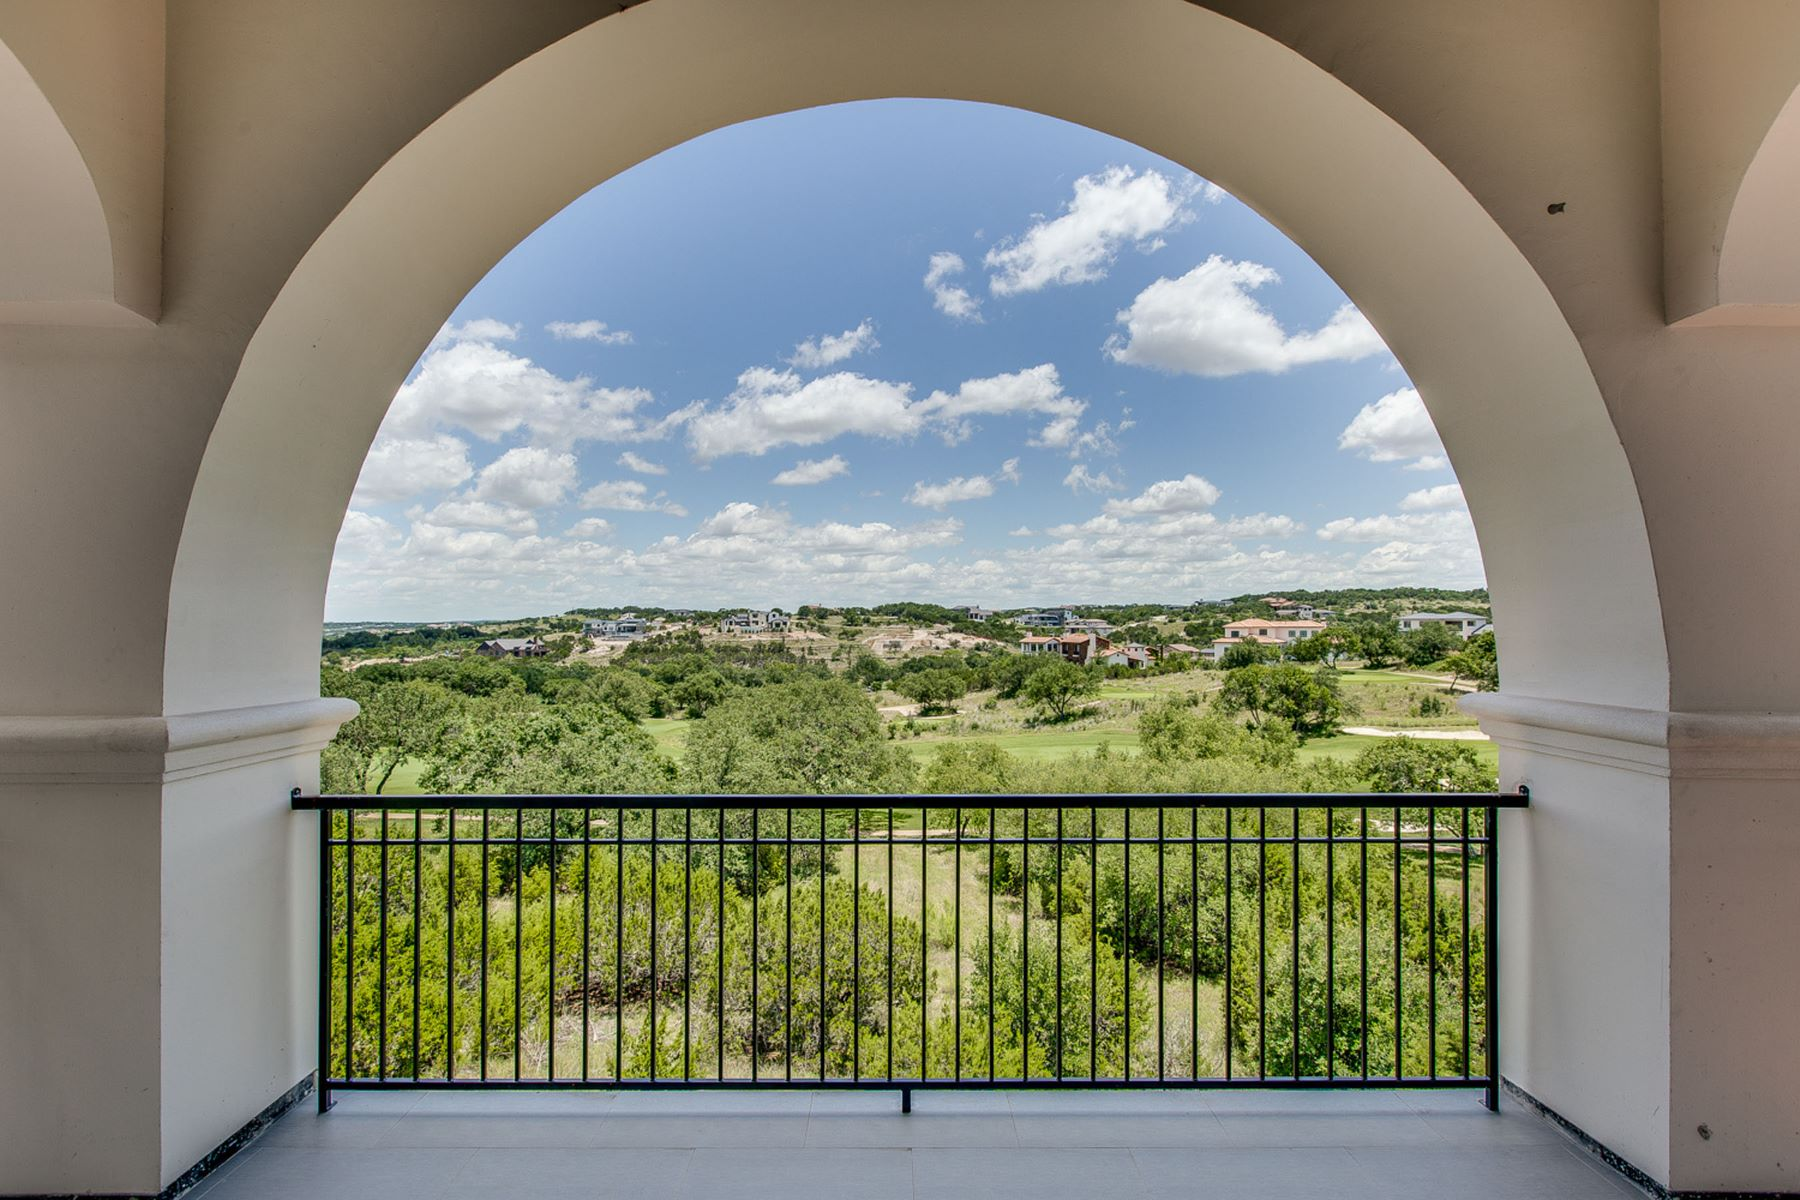 Terreno por un Venta en Breathtaking Golf Course Views 12908 Hacienda Ridge Austin, Texas 78738 Estados Unidos